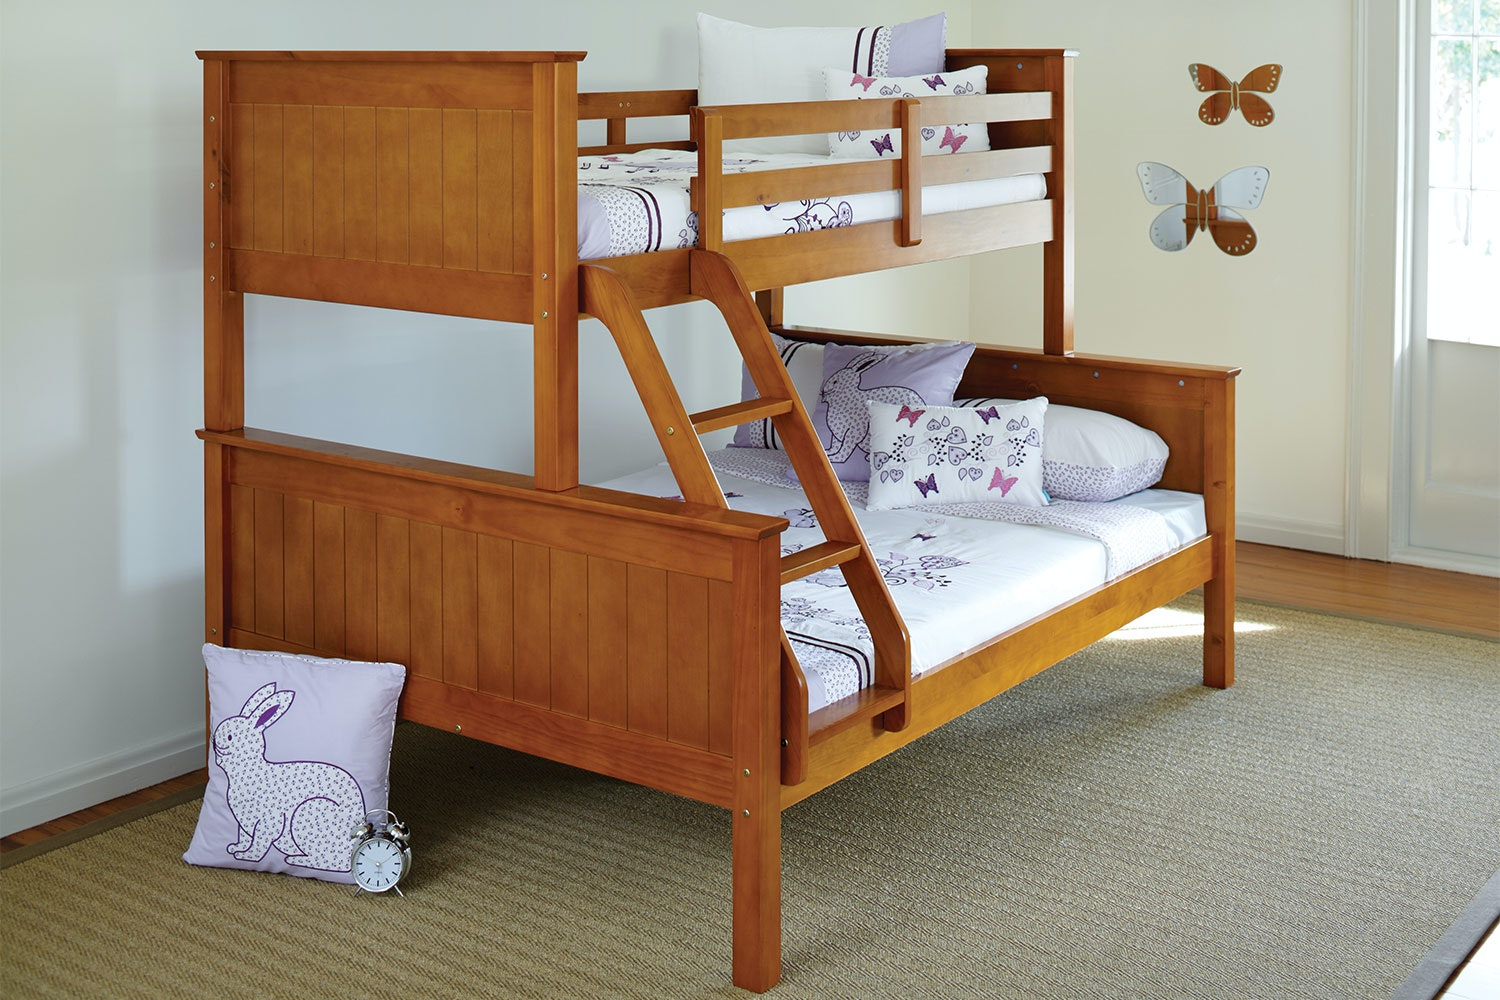 Oak Selena Duo Bunk Bed Frame by Nero Furniture